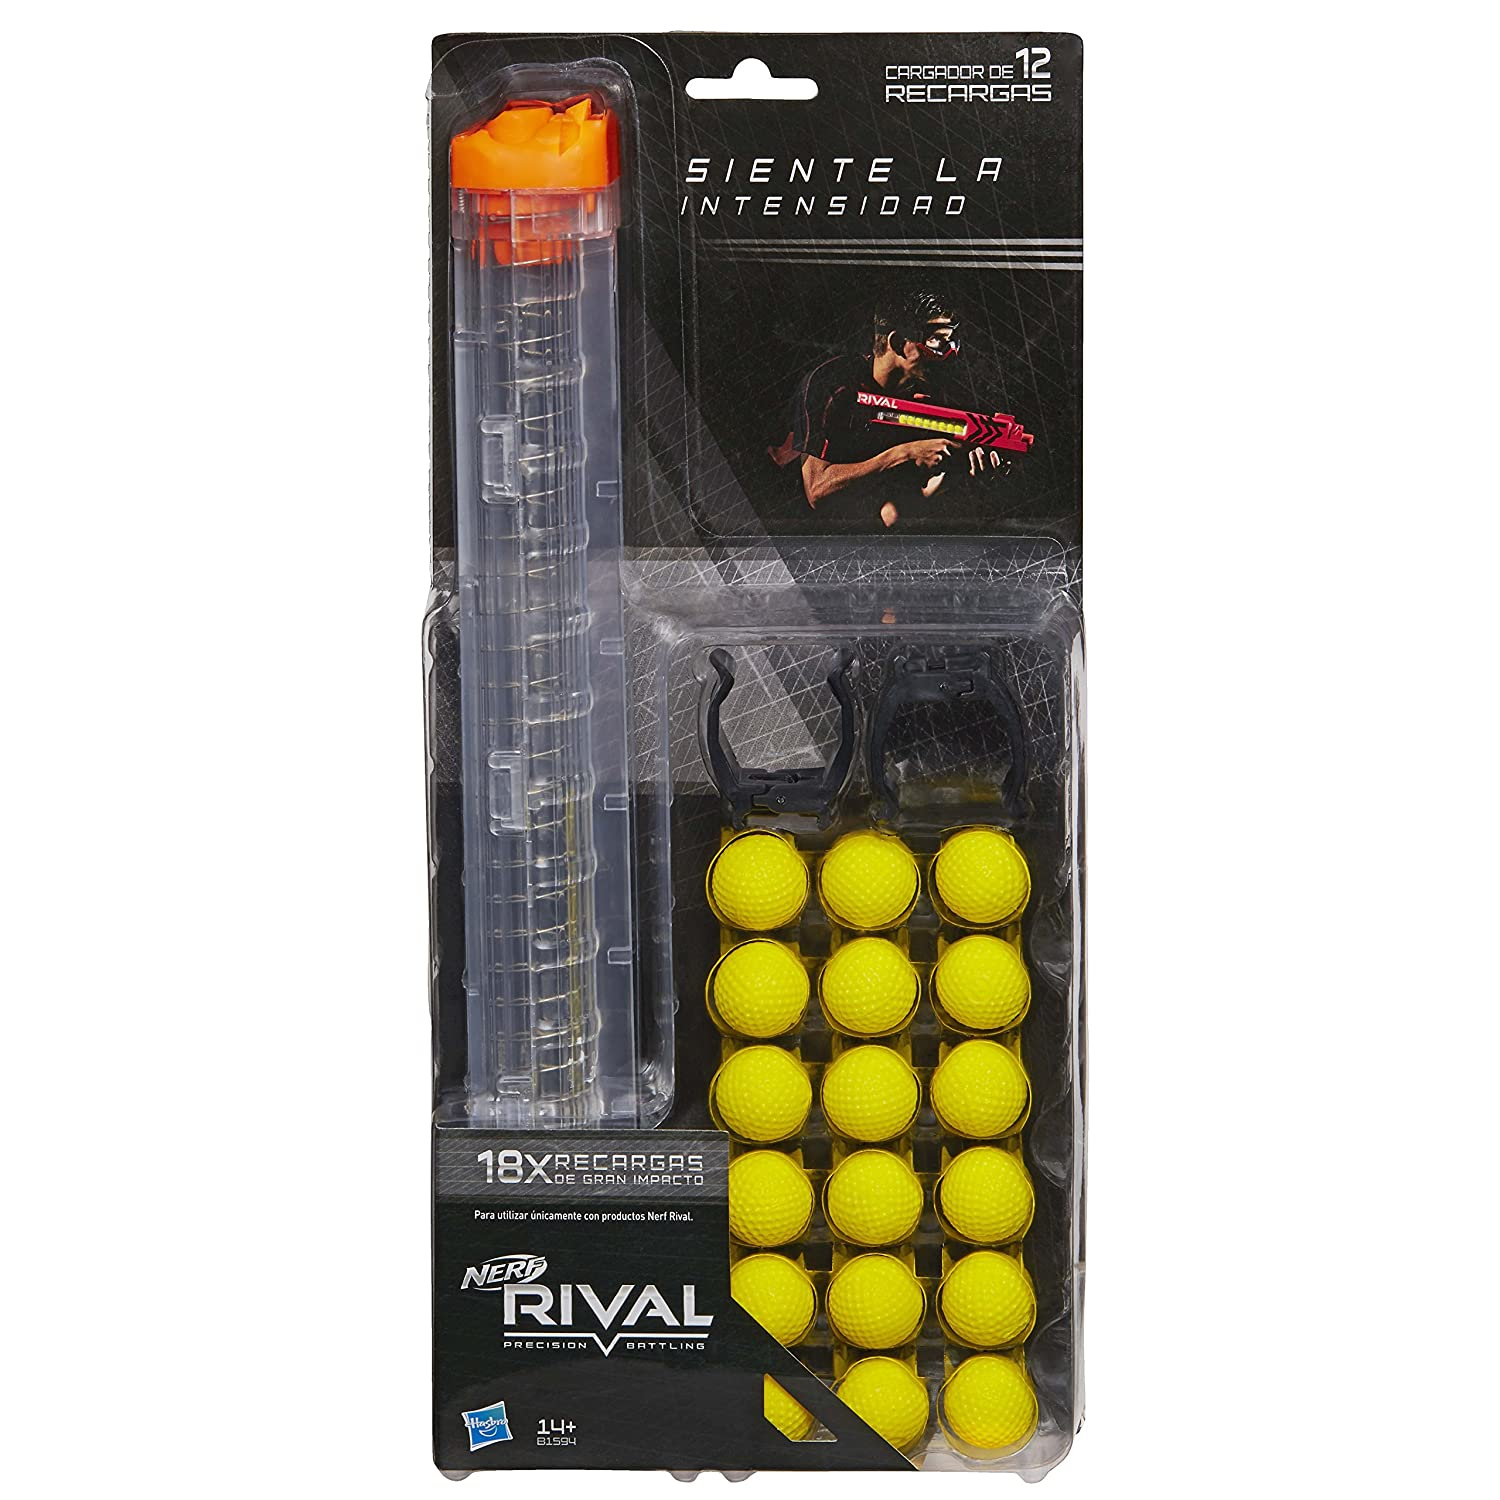 Nerf - Rival Kit Recarga (Hasbro B1594SO0)